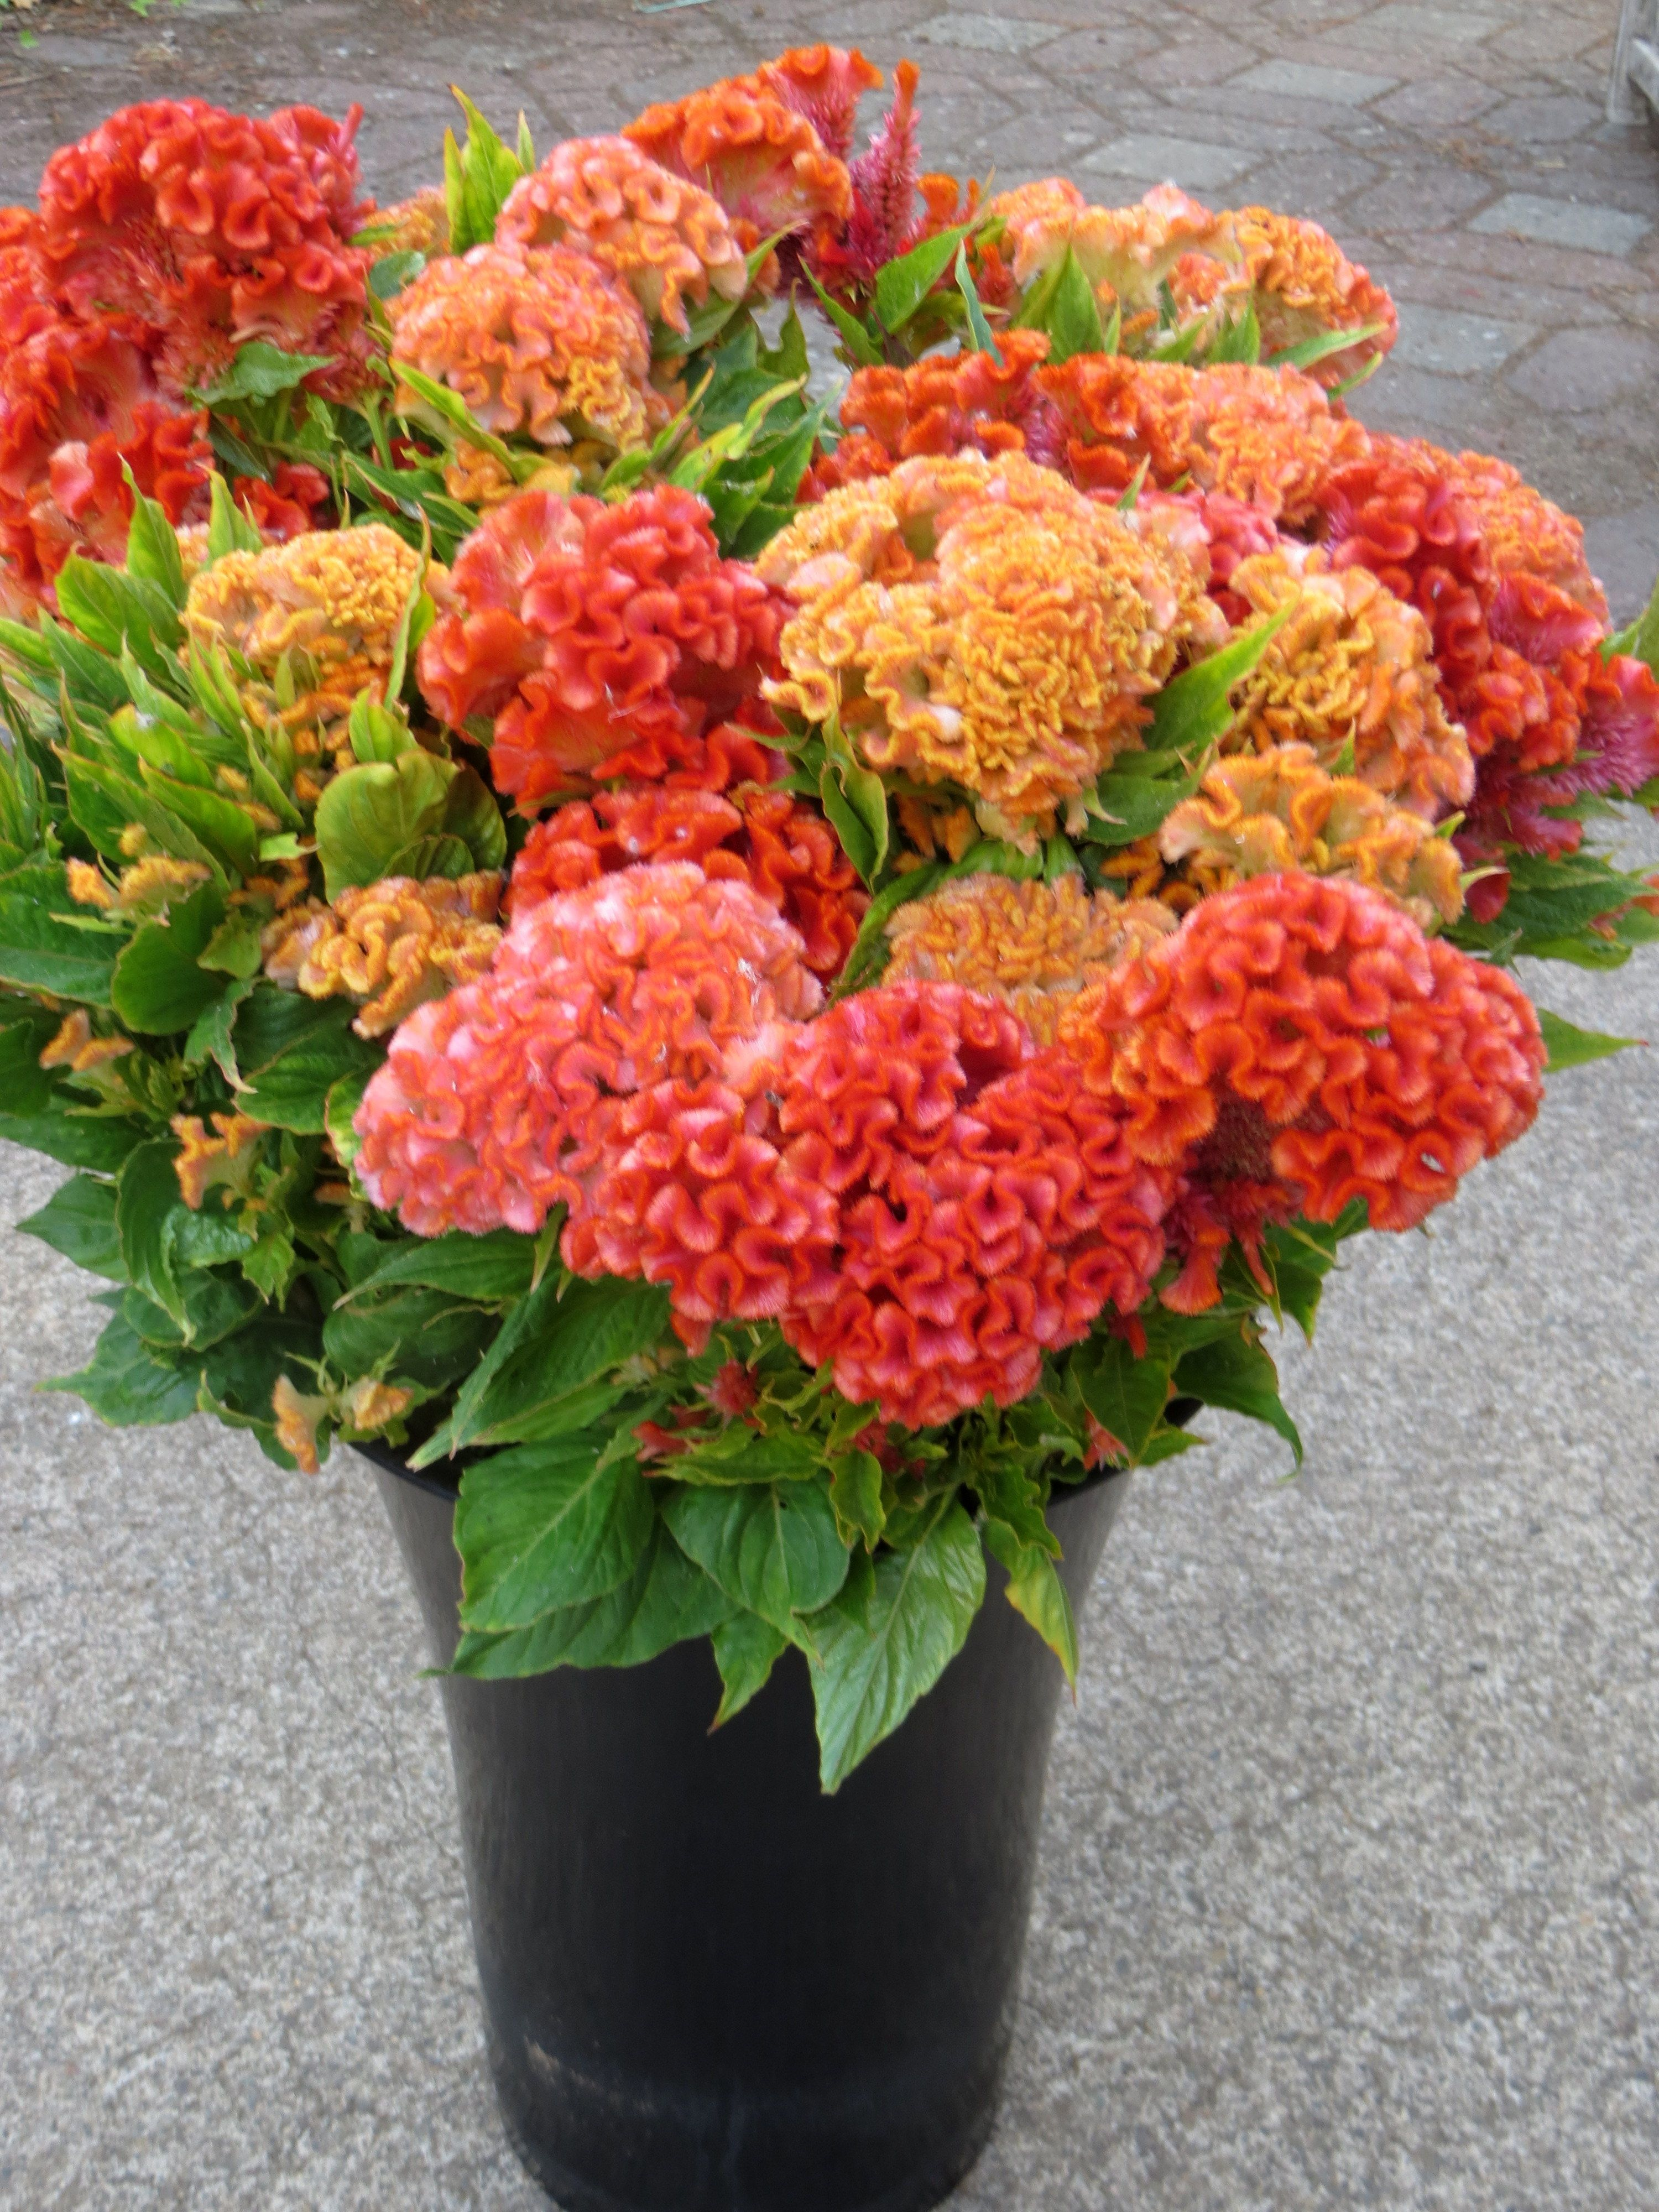 Celosia Cristata Or Cockscomb In Colors Of Oranges Salmons And